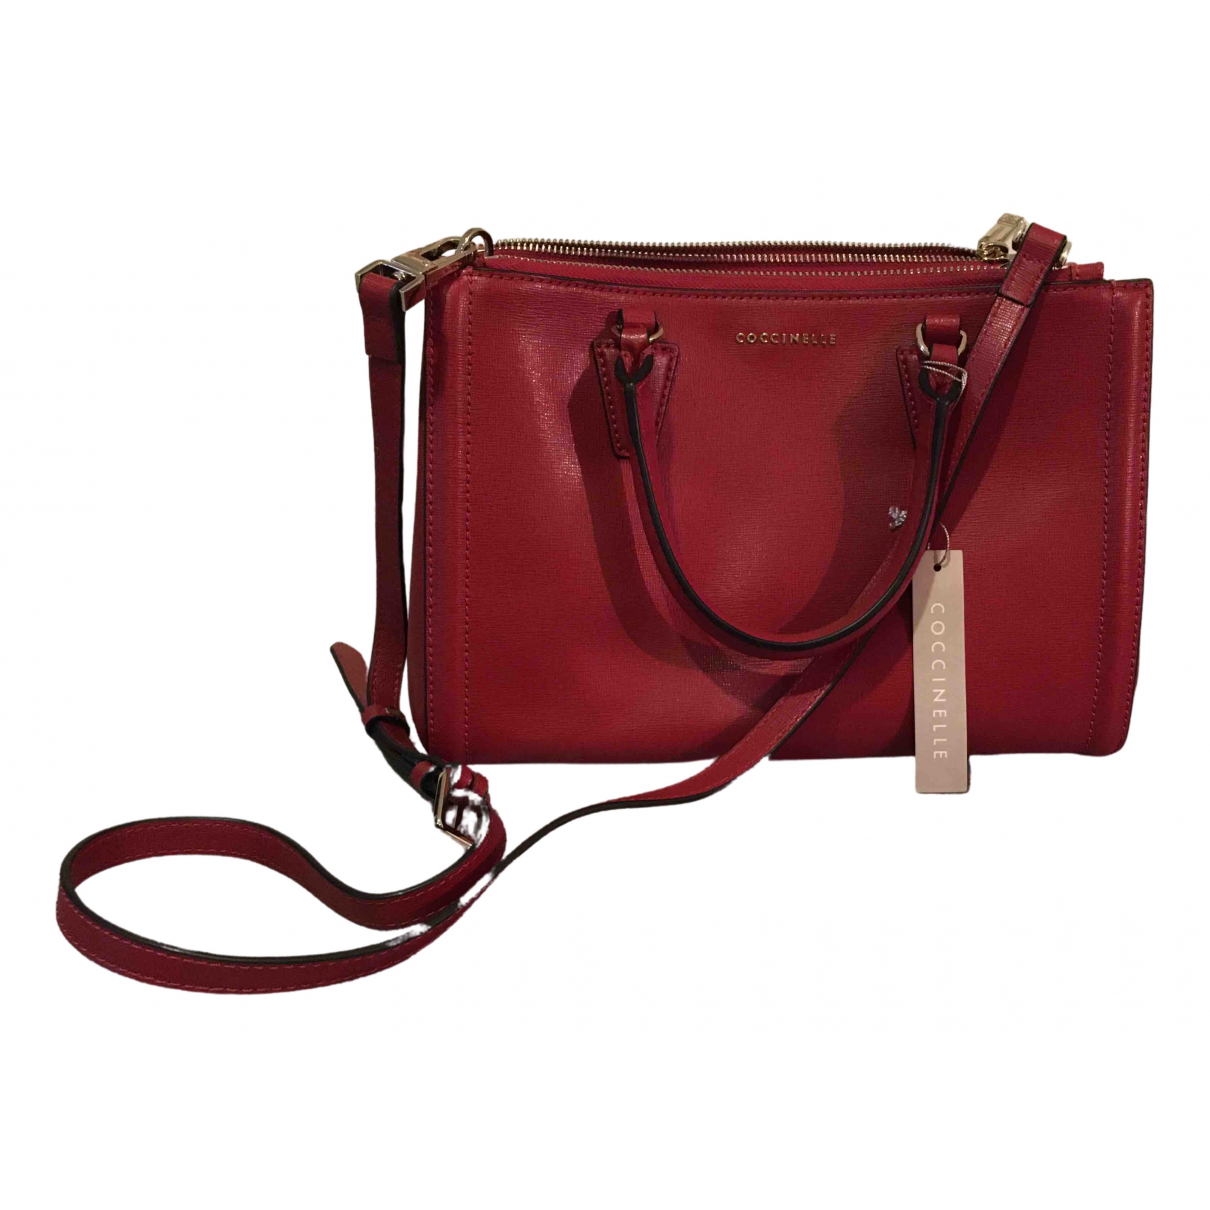 Coccinelle \N Red Leather handbag for Women \N